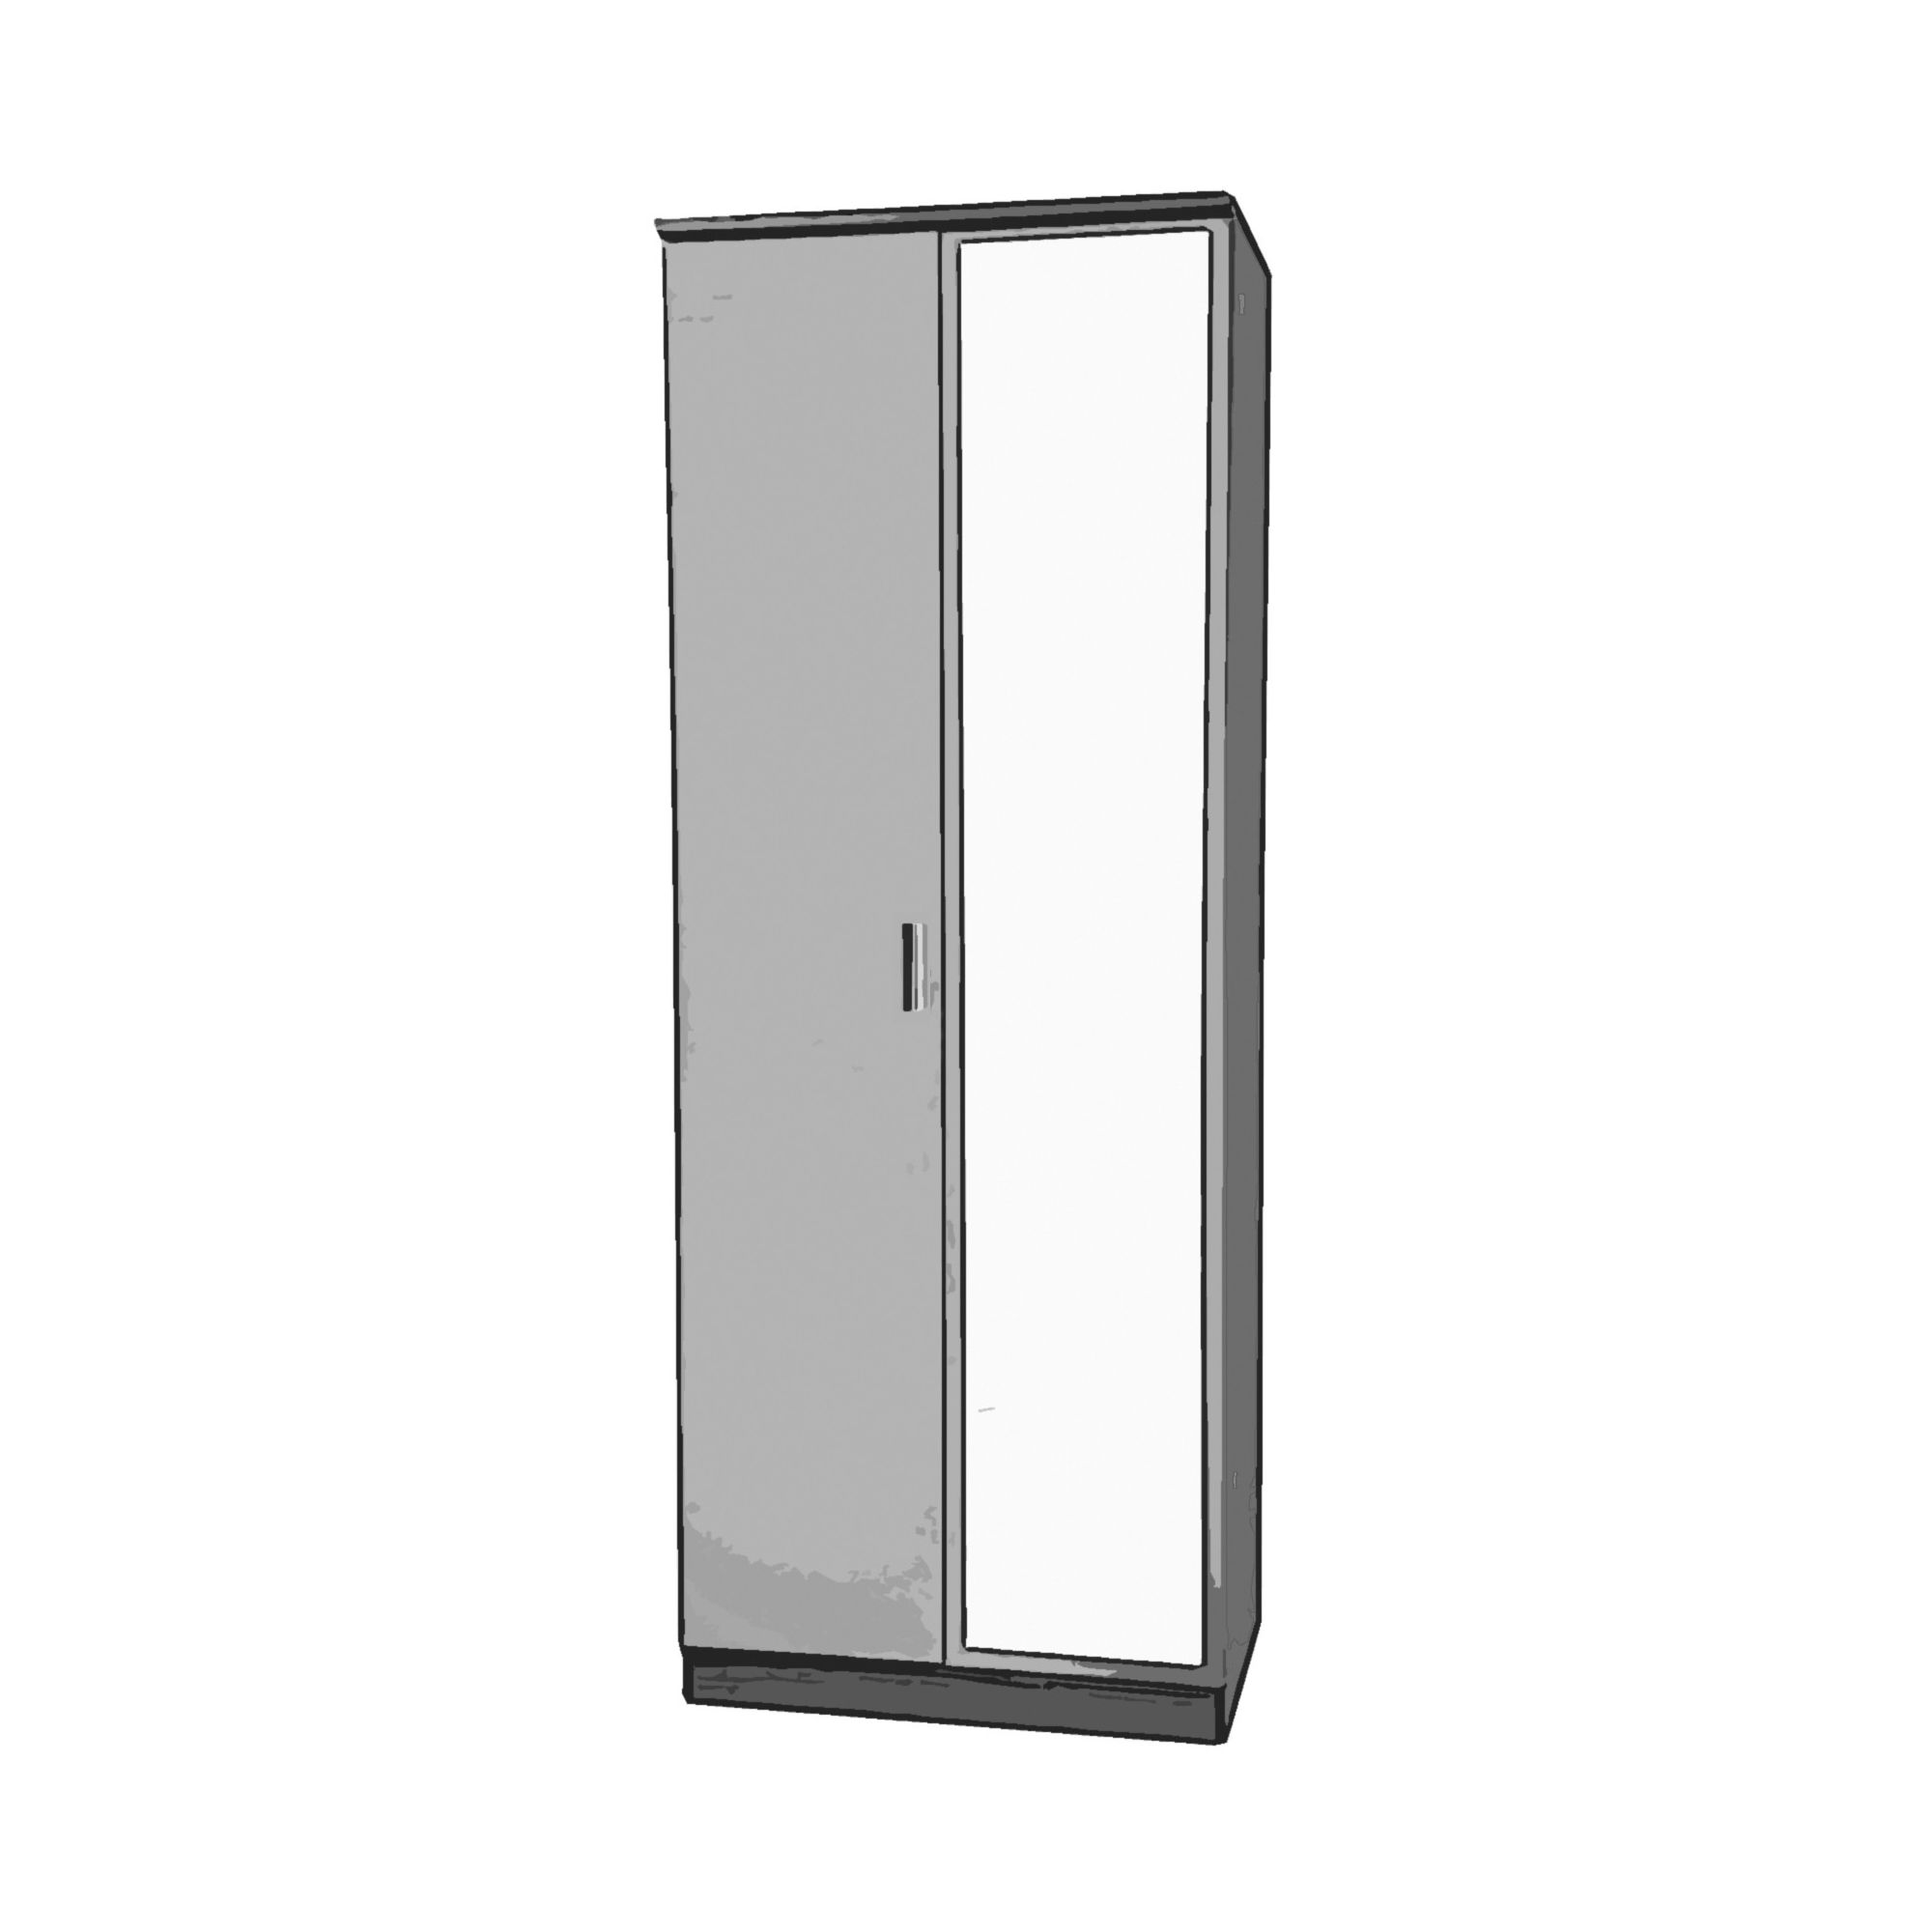 Welcome Furniture Mayfair Tall Wardrobe with Mirror - Aubergine - Black - Black at Tesco Direct